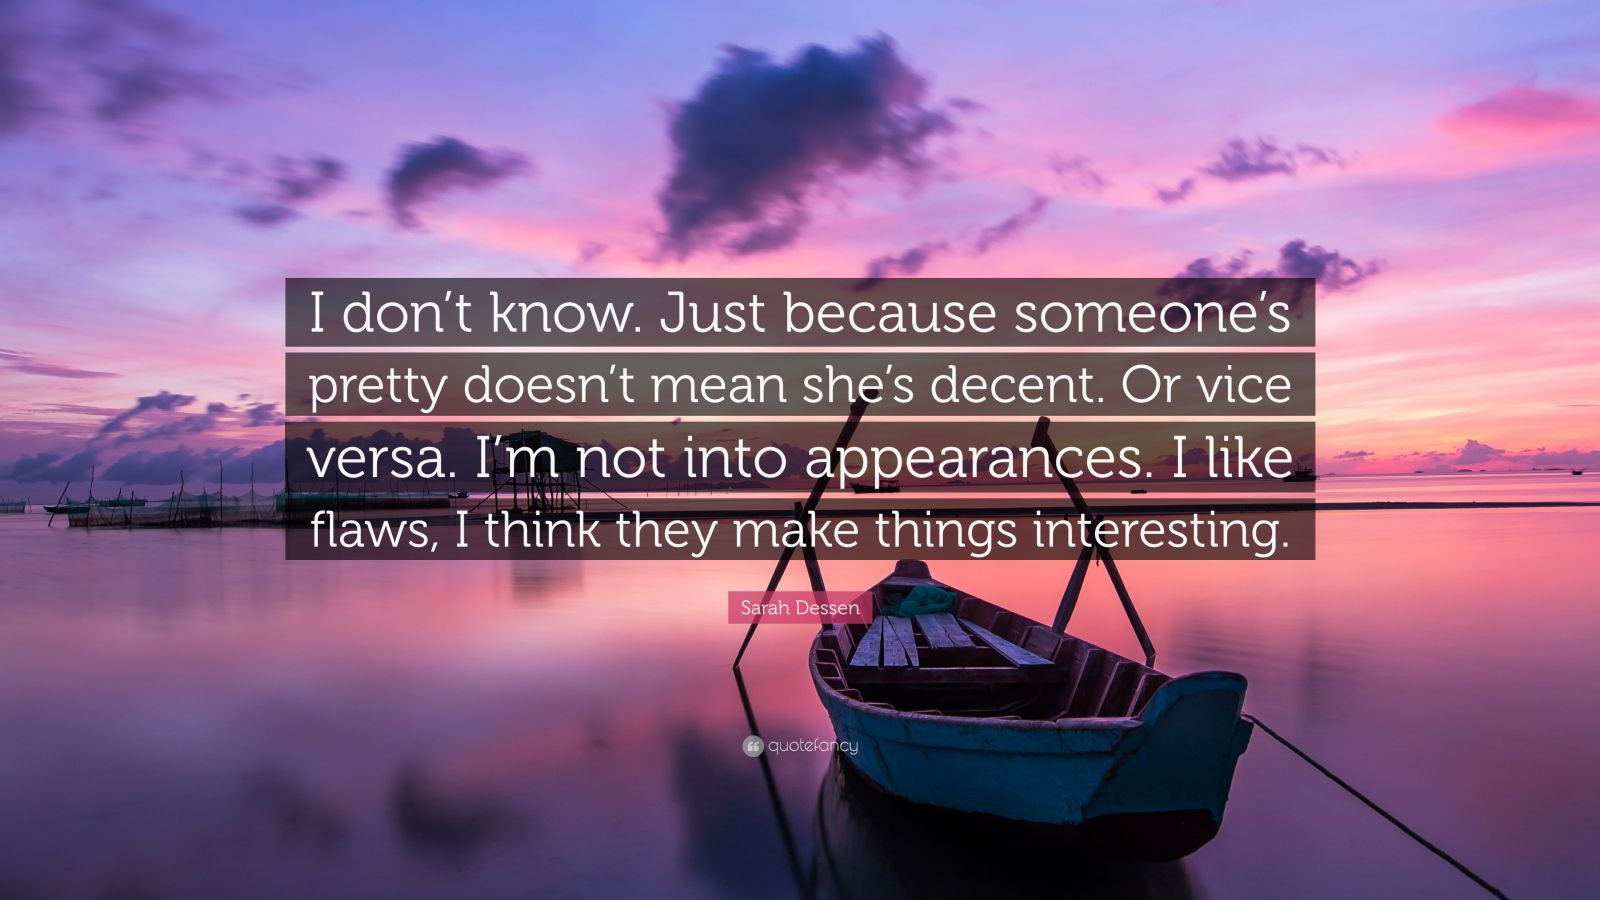 """Sarah Dessen Quote: """"I don't know. Just because someone's pretty doesn't mean she's decent. Or vice versa. I'm not into appearances. I like flaws, I think they make things interesting."""""""